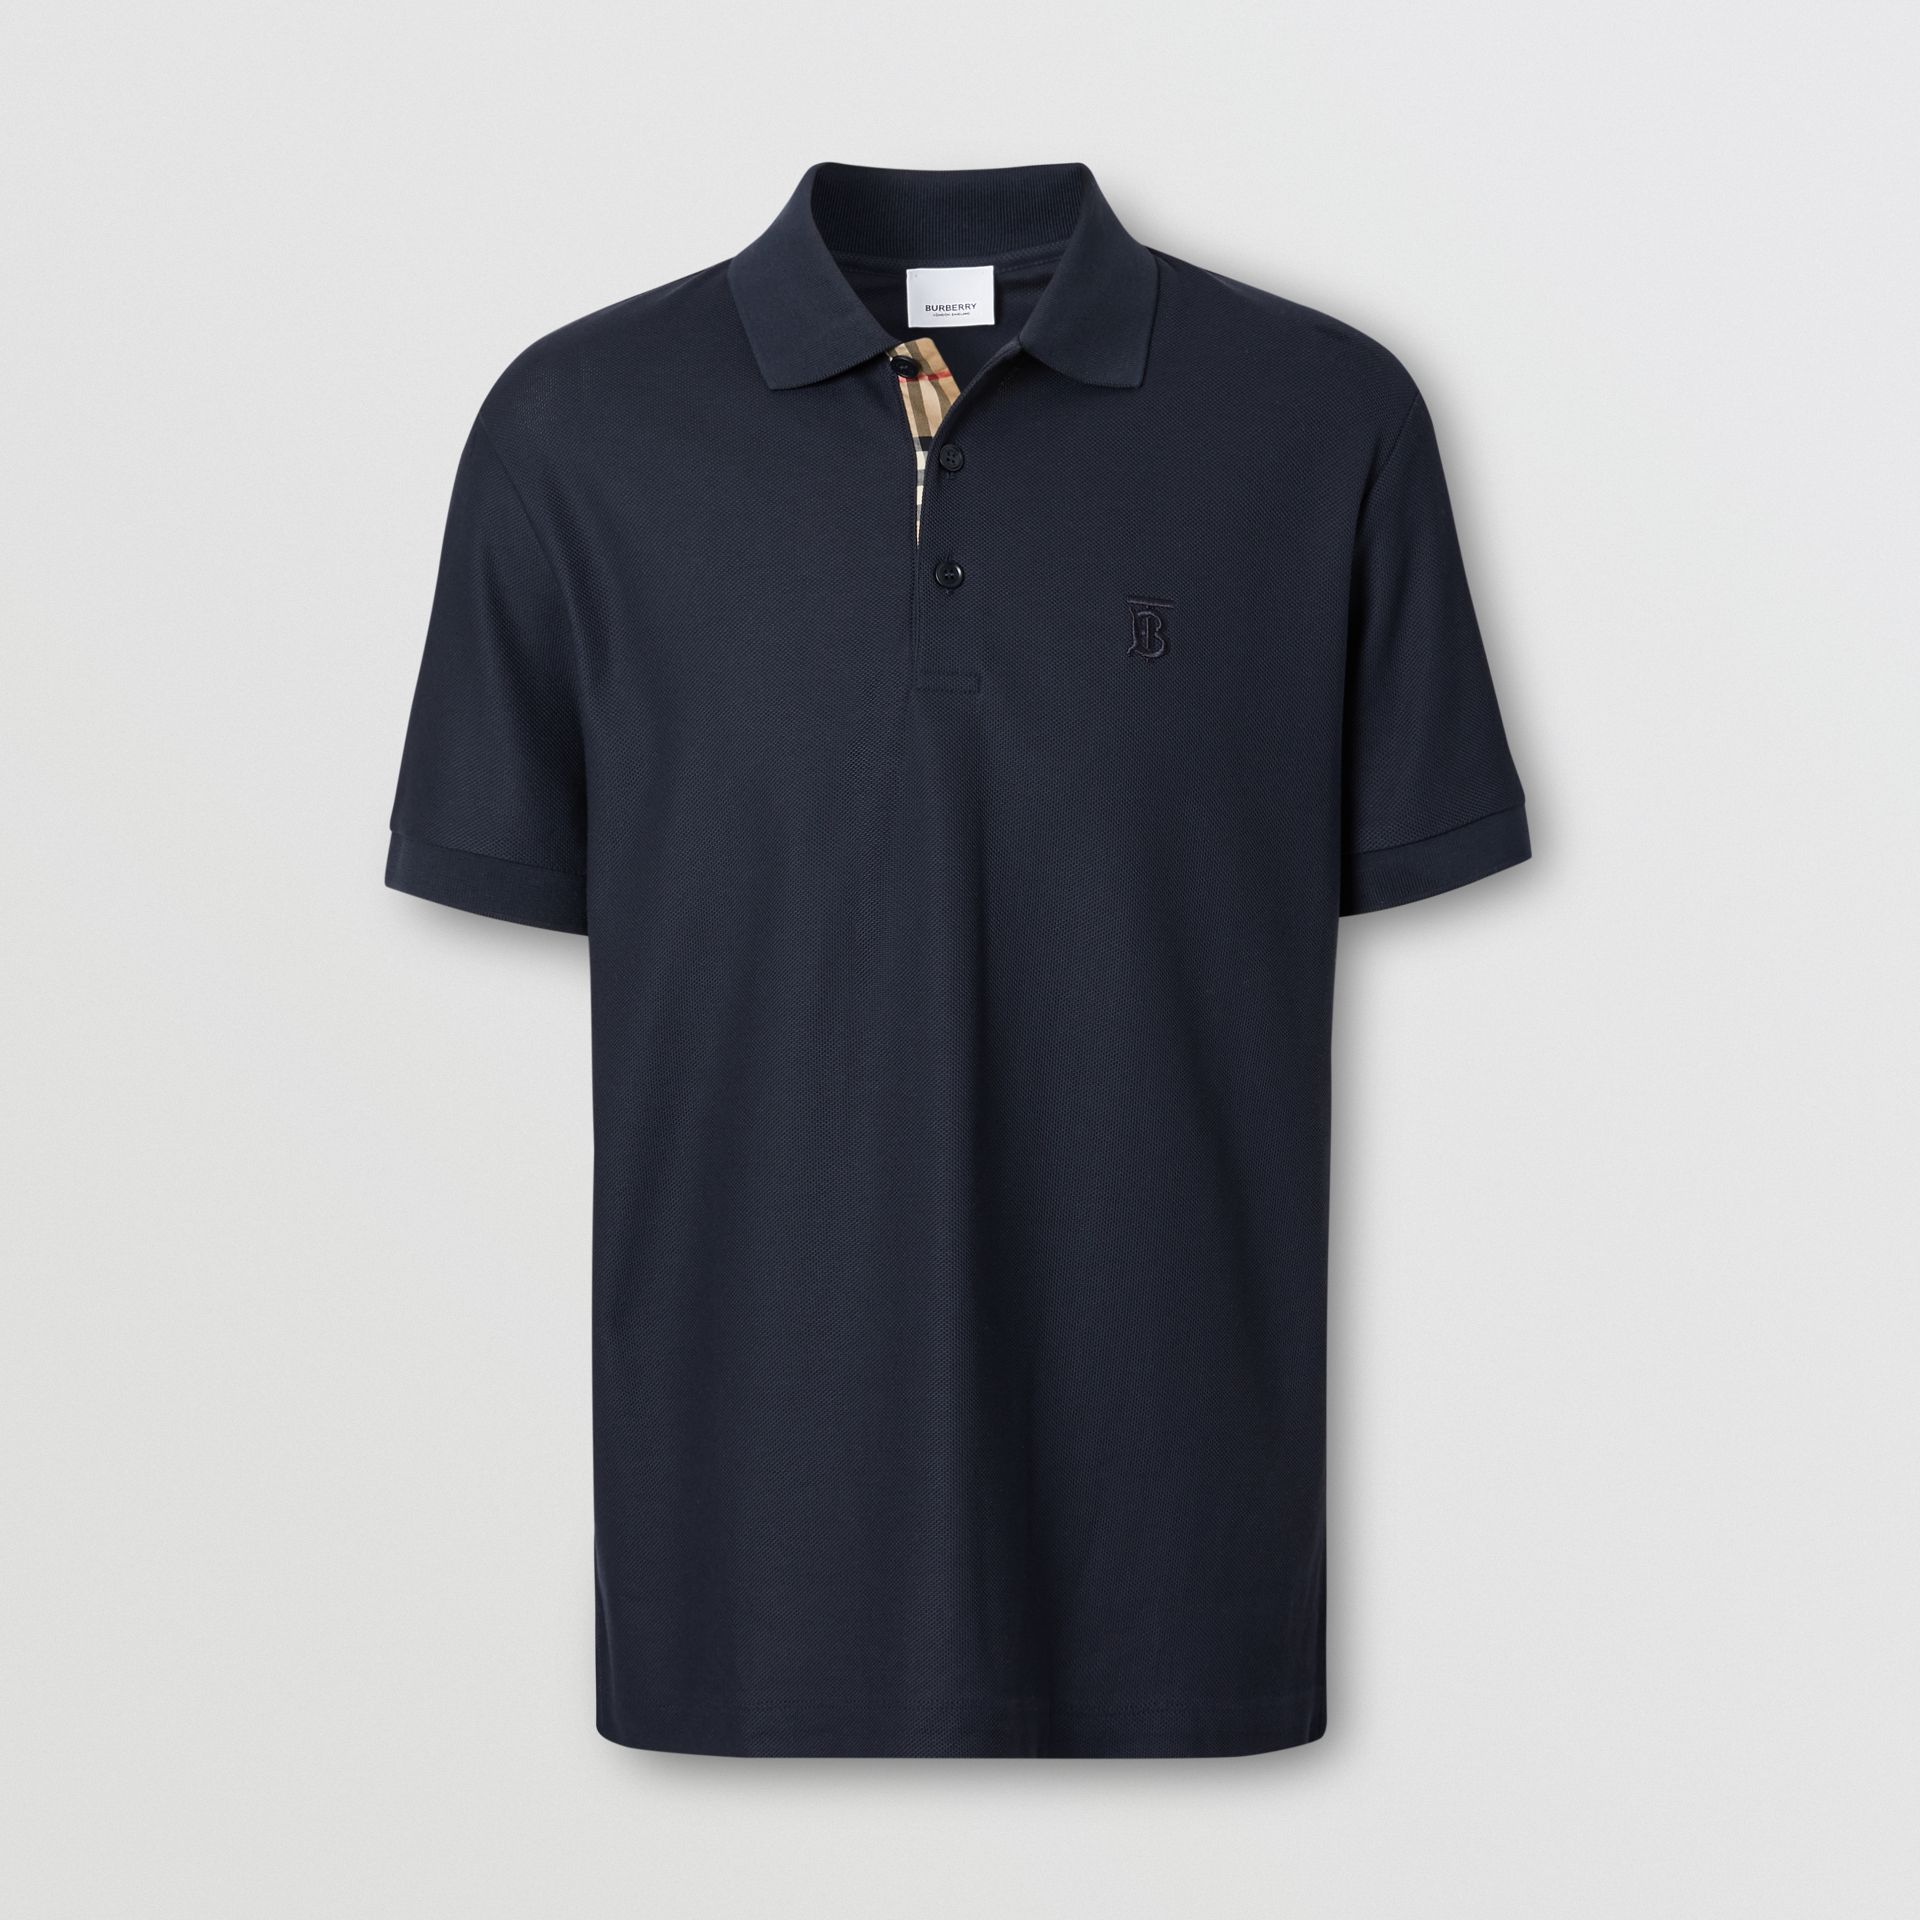 Monogram Motif Cotton Piqué Polo Shirt in Navy - Men | Burberry - gallery image 3